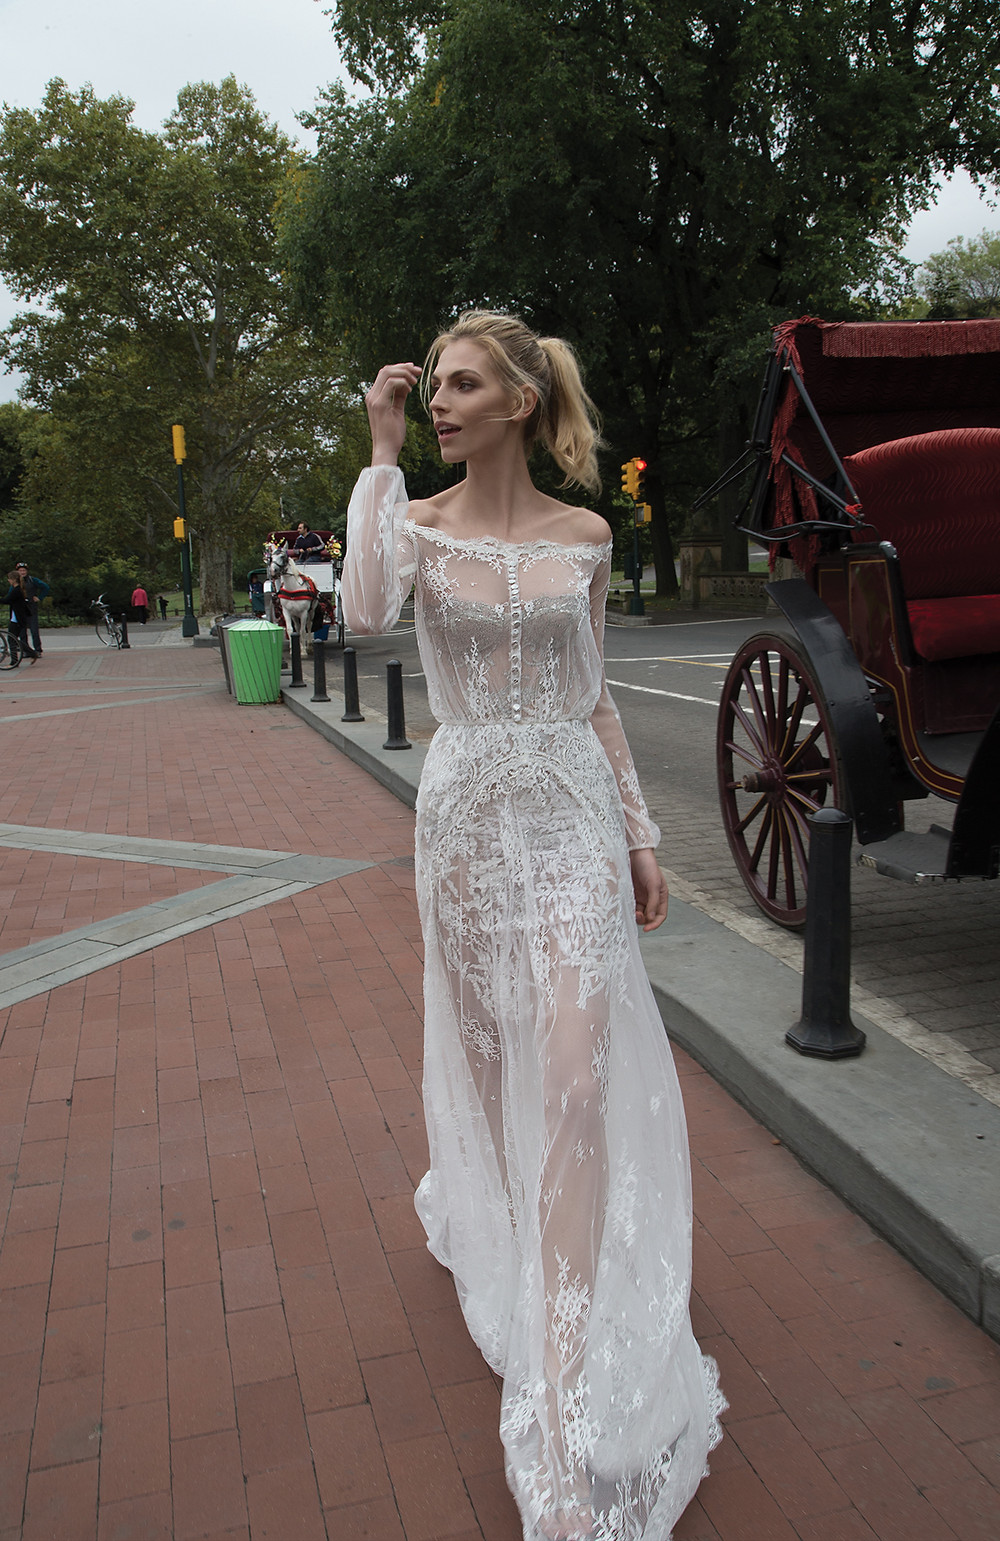 An off the shoulder tulle A-line wedding dress, with long sleeves and lace